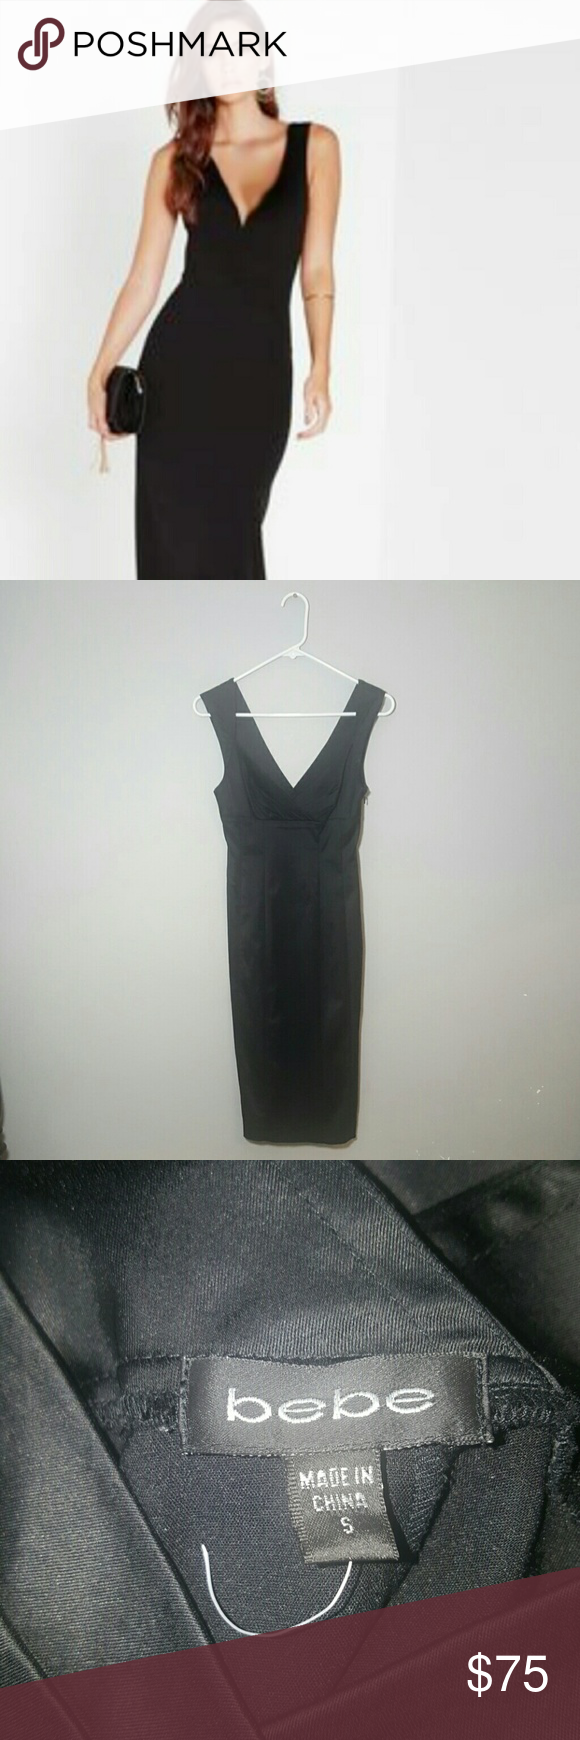 Bebe classy elegant black satin midi bodycon dress Bebe size Small black stretchy satin, midi dress is sleeveless with a sexy V cut, back slit and side hidden zipper! This dress is sure to turn heads!!   Great for a special occasion or holiday parties :) bebe Dresses Midi